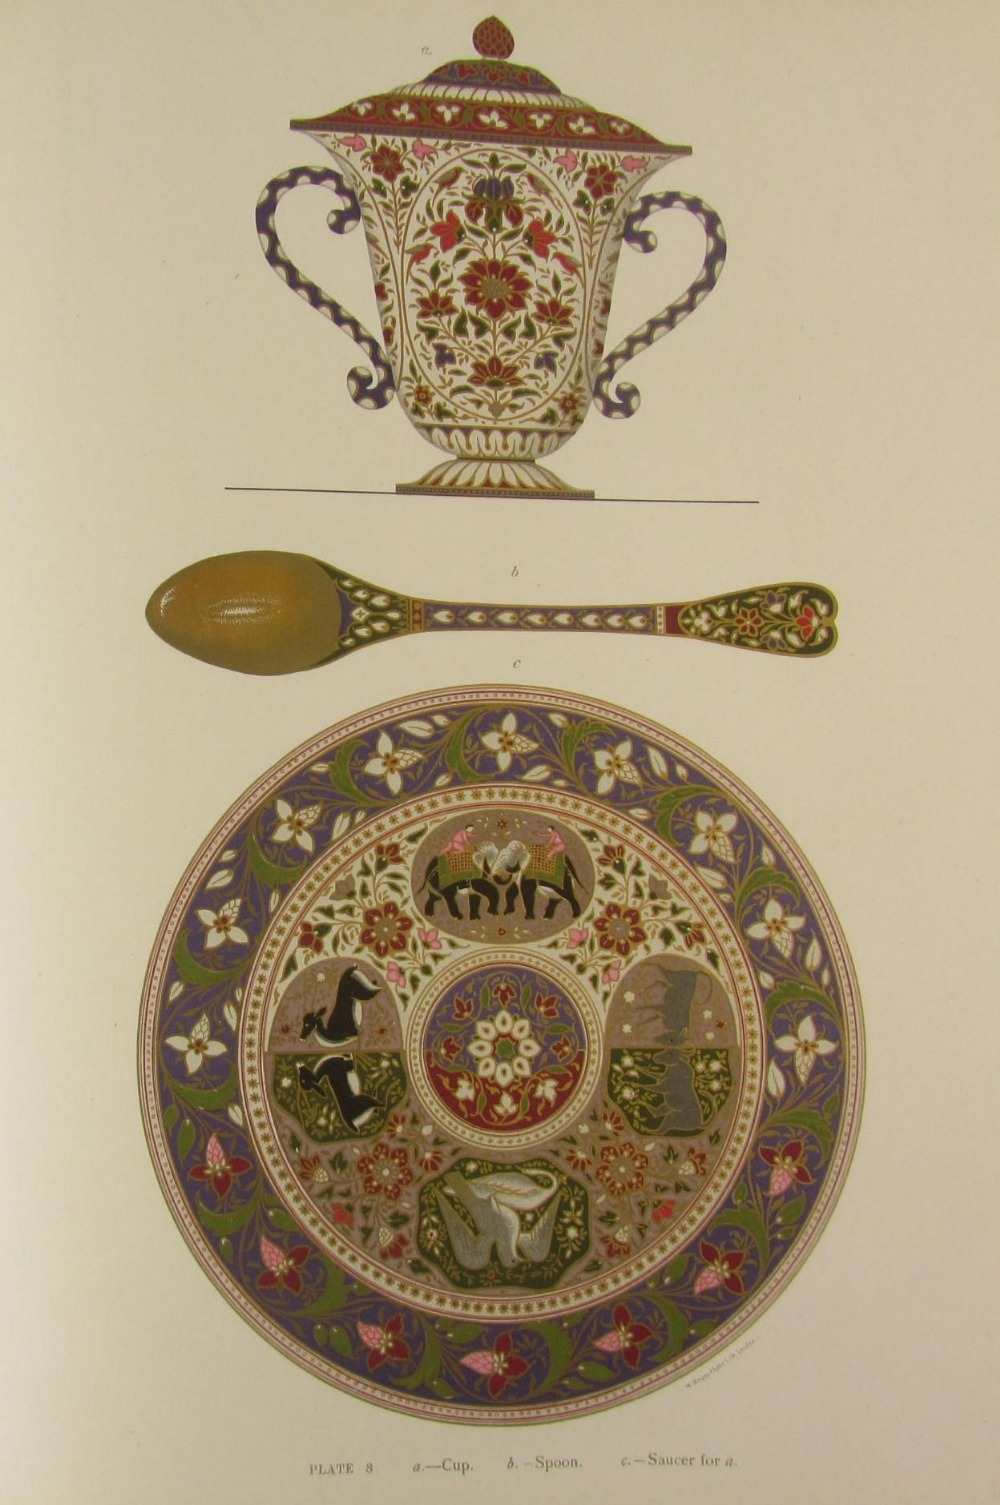 Plate 8. Cup, spoon and saucer that goes with the cup.